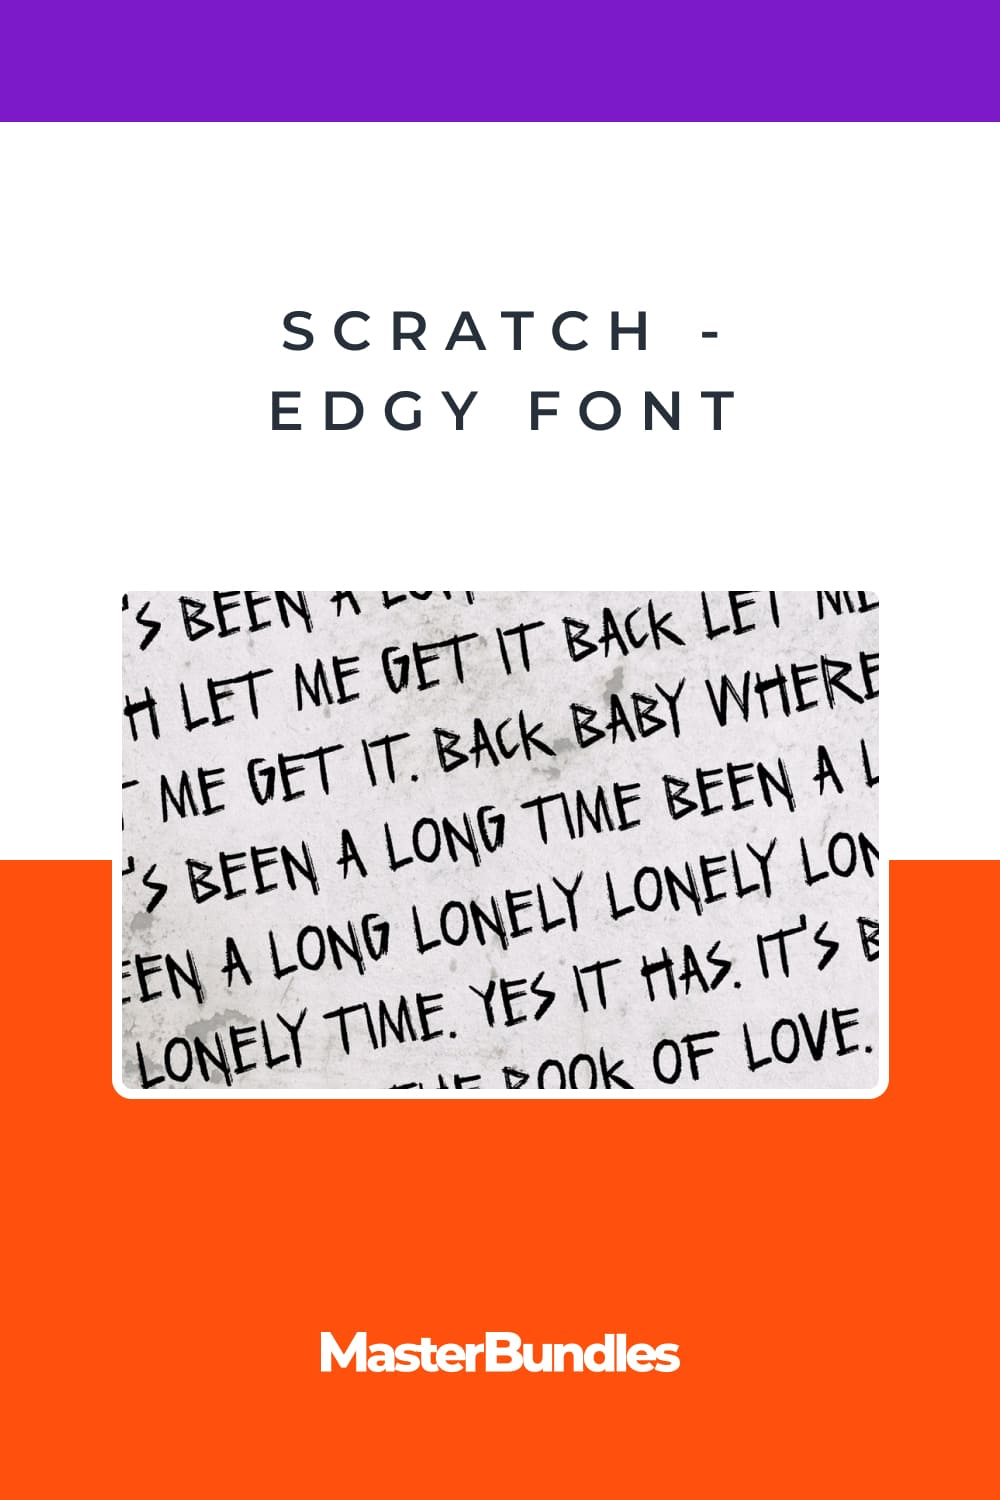 This is a sharp, eerie, awesome handmade font.